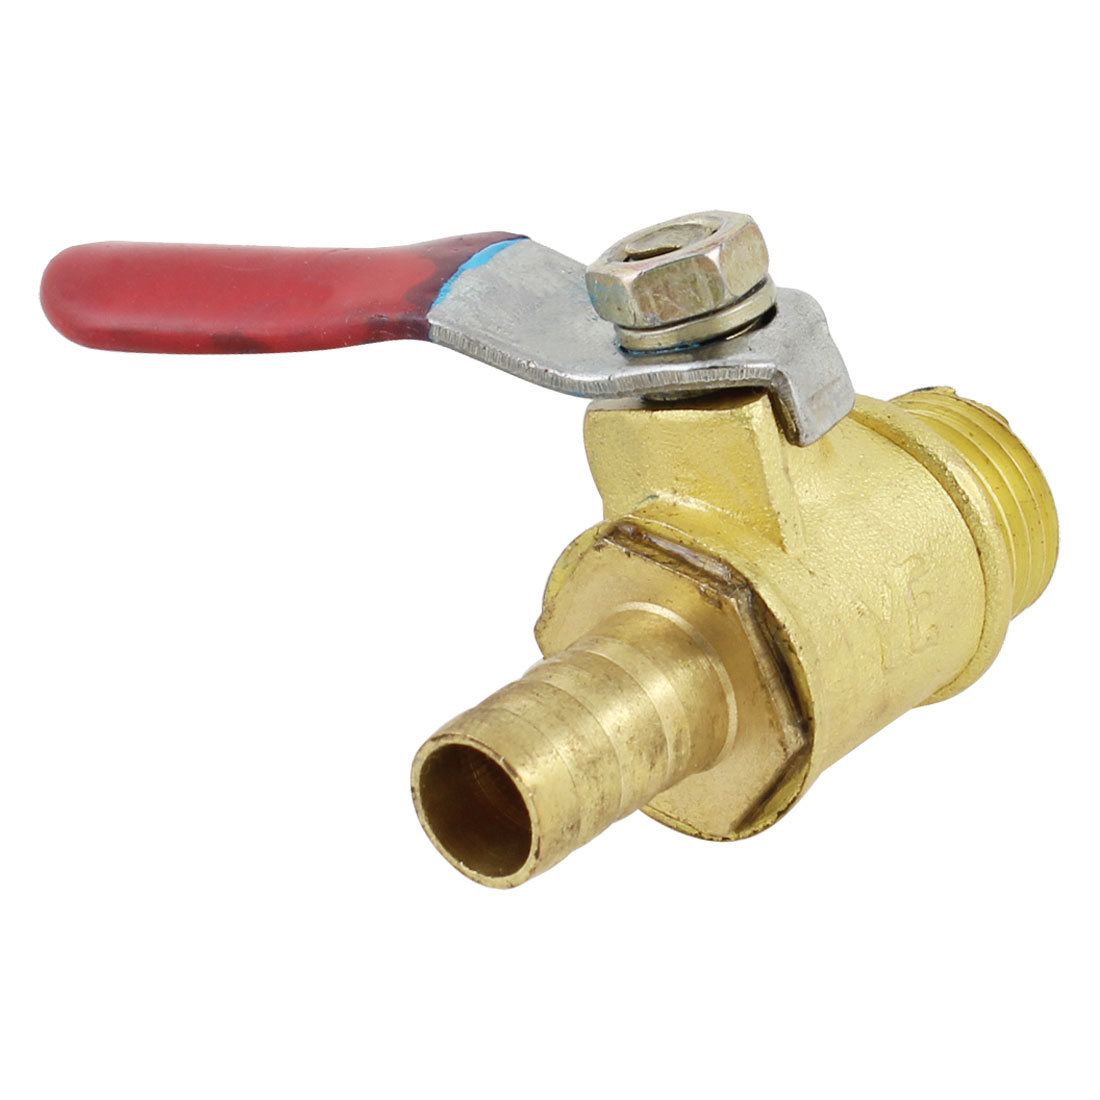 Pneumatic Fitting 13mm Male Thread to 7mm Hose Tail Connector Gas Ball Valve